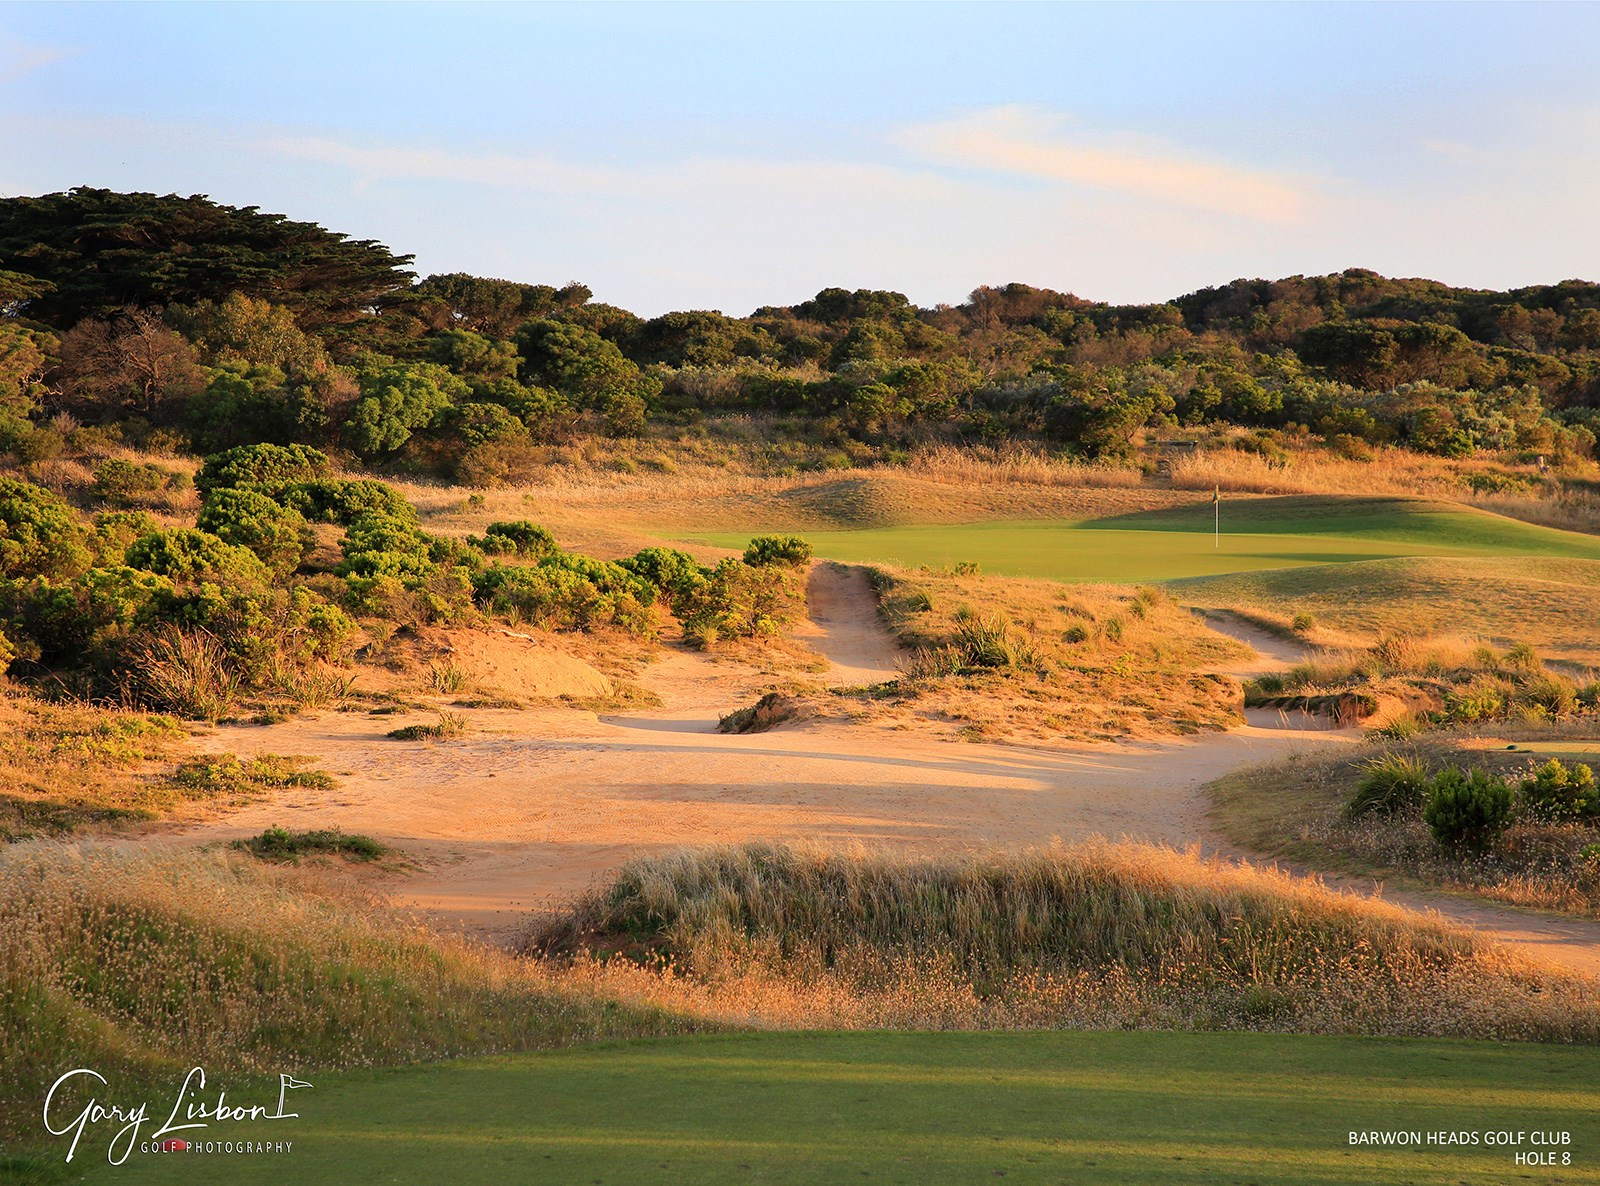 Barwon Heads Golf Club Hole 8